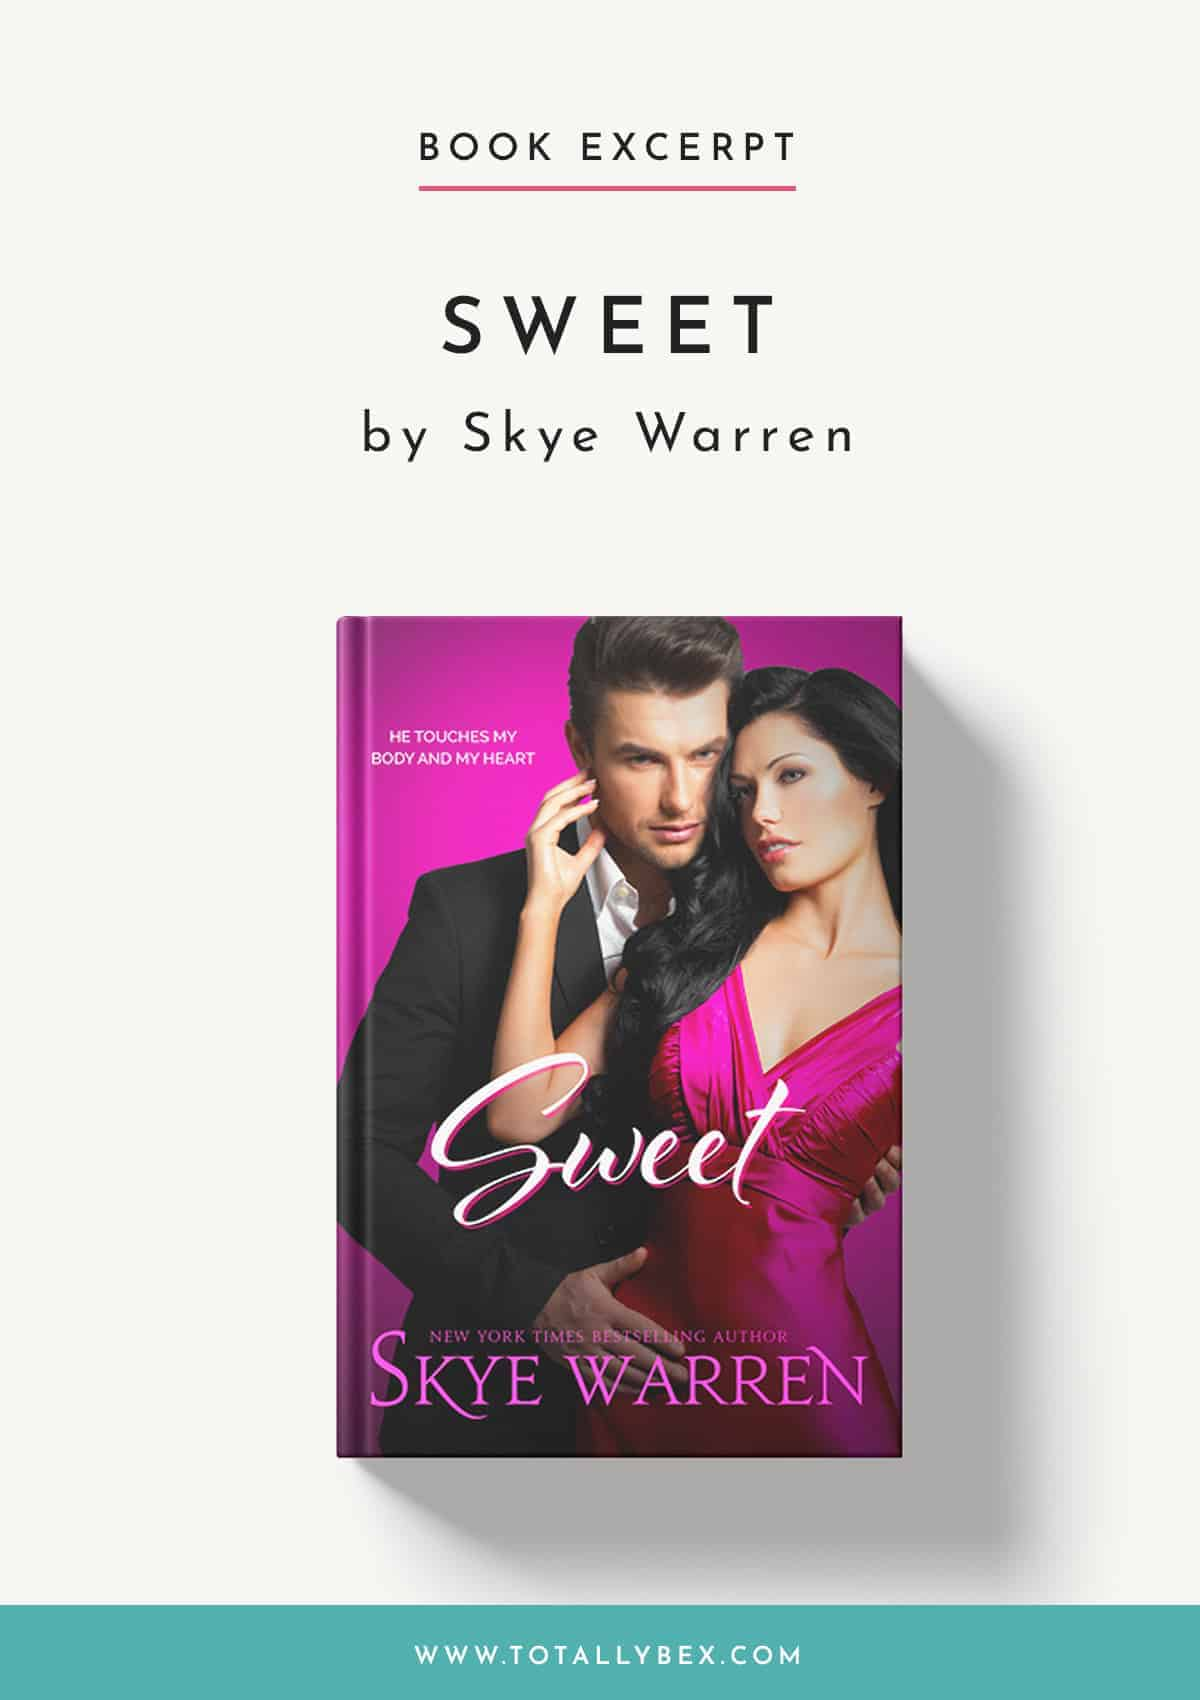 Sweet by Skye Warren-Book Excerpt